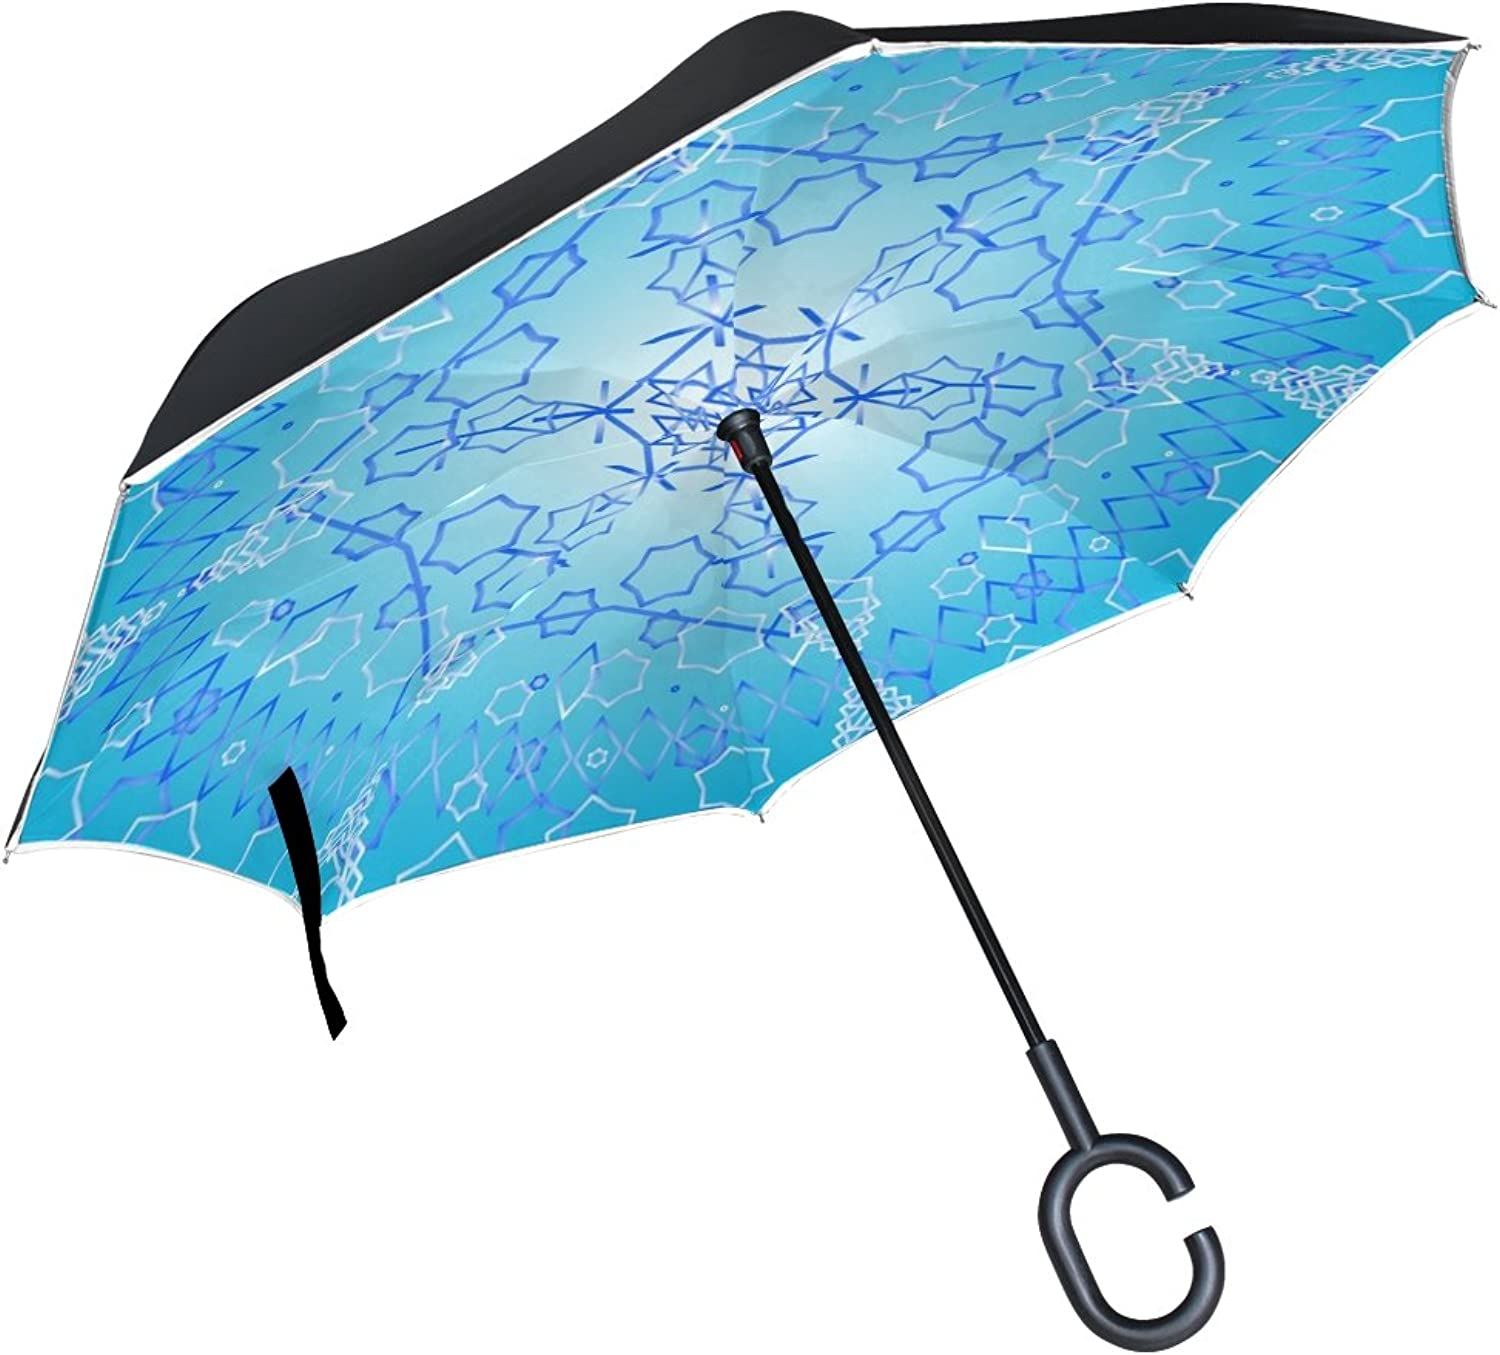 Double Layer Ingreened Design Winter Snowflake Decoration Holiday Snow Umbrellas Reverse Folding Umbrella Windproof Uv Predection Big Straight Umbrella for Car Rain Outdoor with CShaped Handle